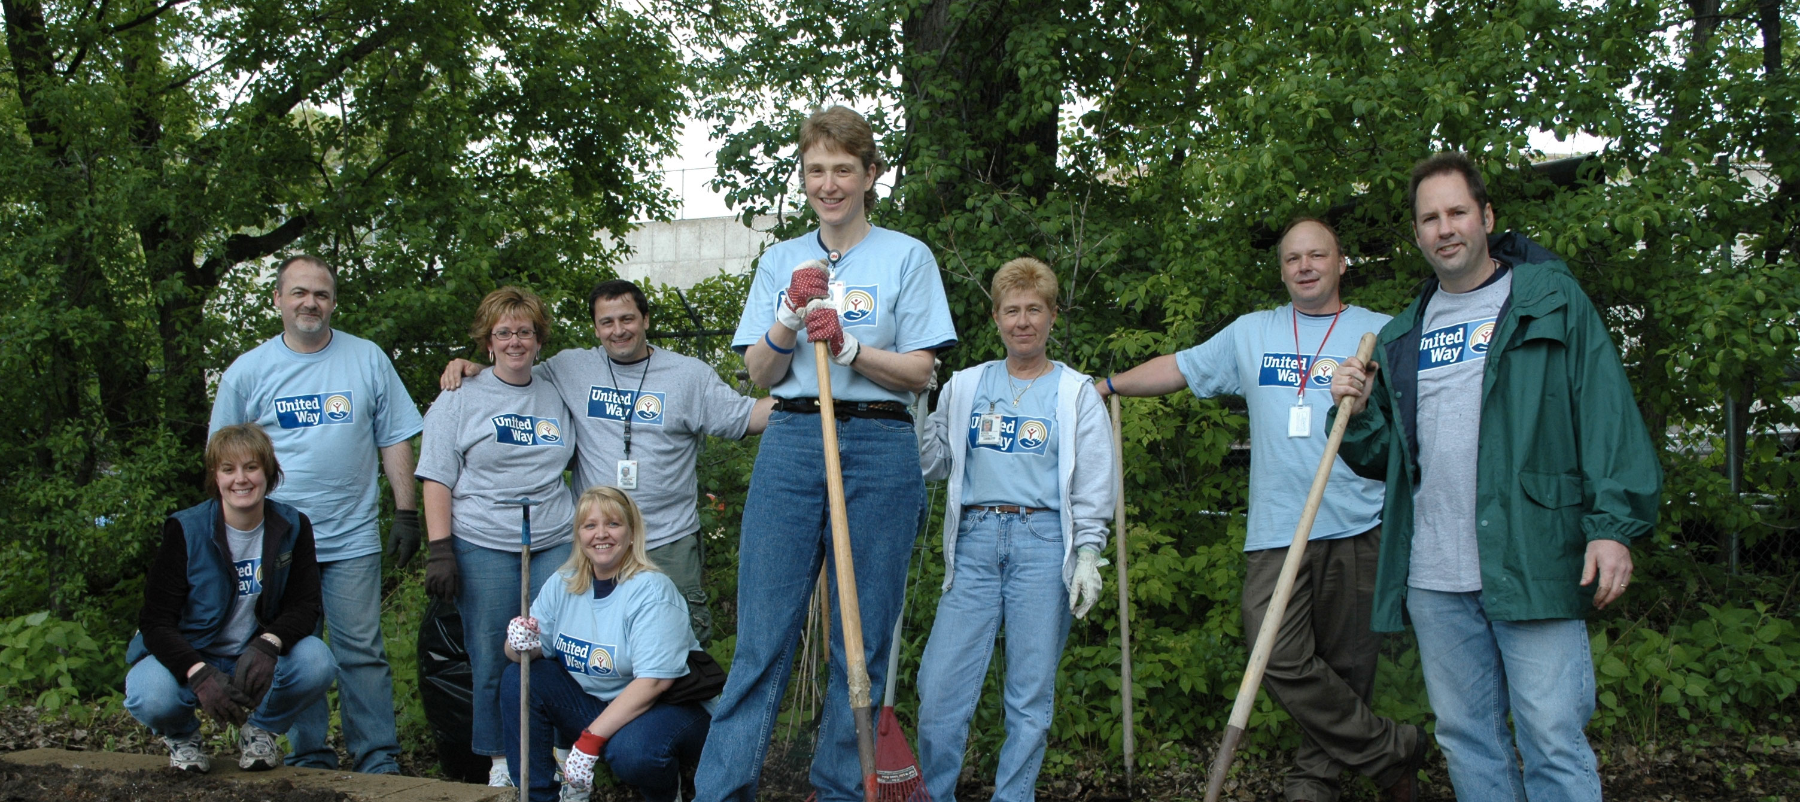 On Make A Difference Day, give back in small and large ways to create change in your community.